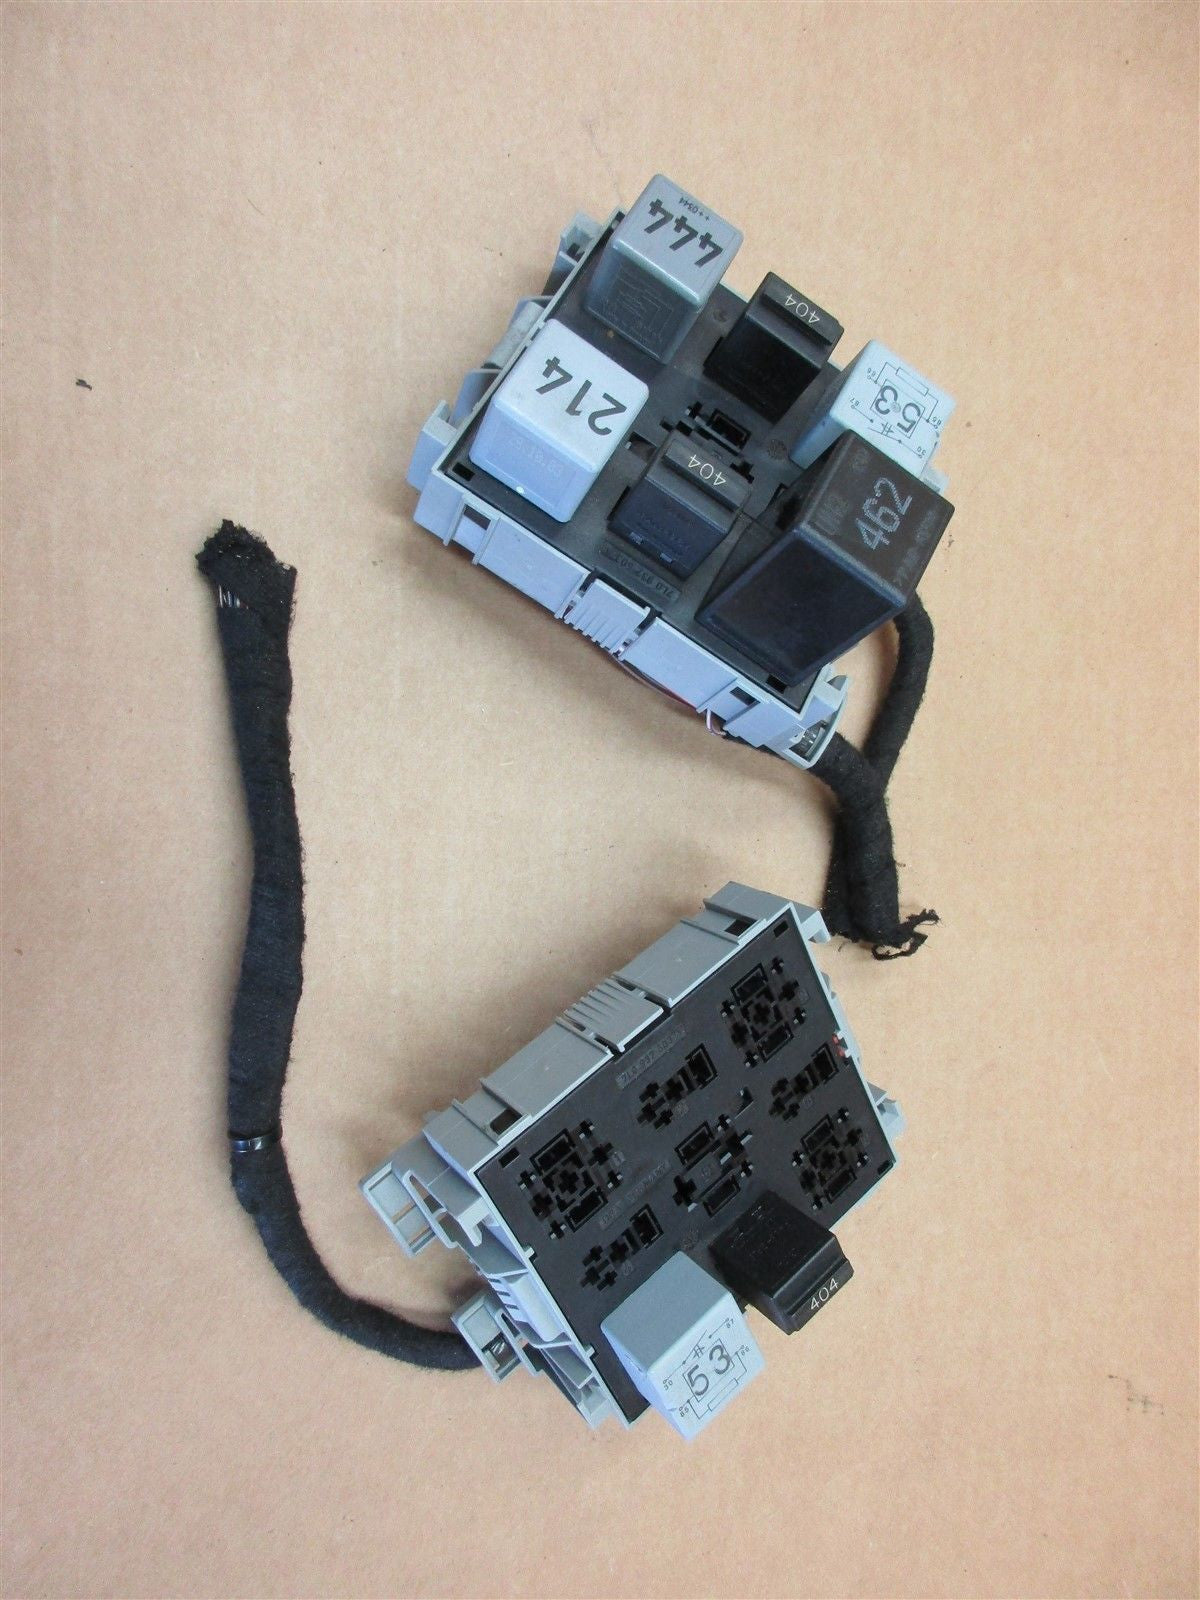 57_b619a8ba 5605 402b a667 e8c08edc3f21?v=1485406157 04 cayenne turbo awd porsche 955 fuse box relay 7l0941828 04 cayenne fuse box at gsmportal.co